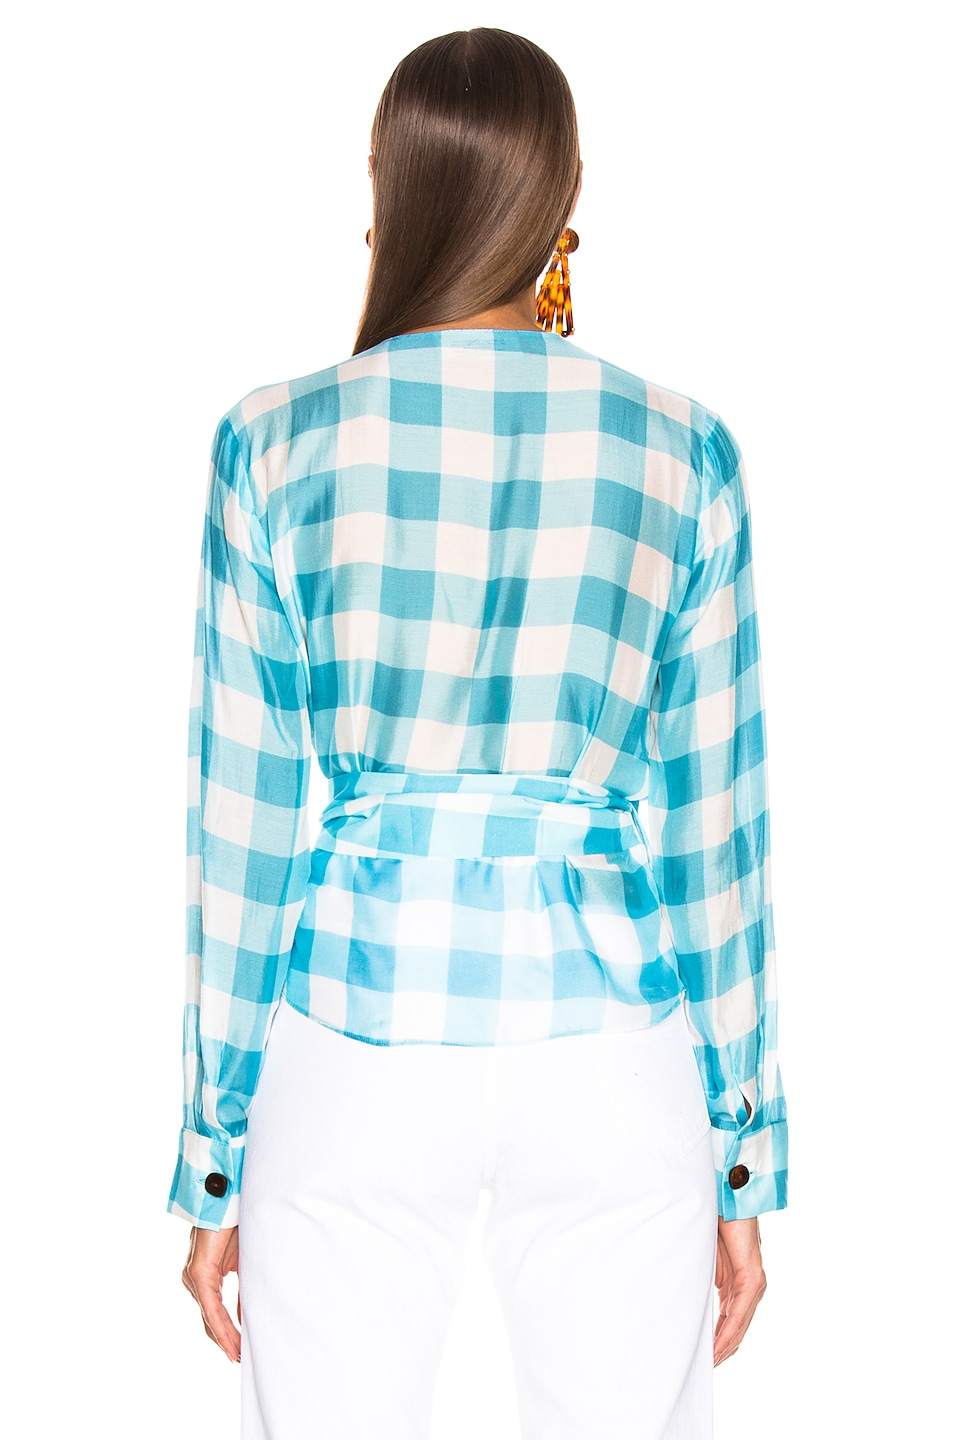 Image 4 of ADRIANA DEGREAS Vichy Cross Front Shirt With Hoop in Blue & White